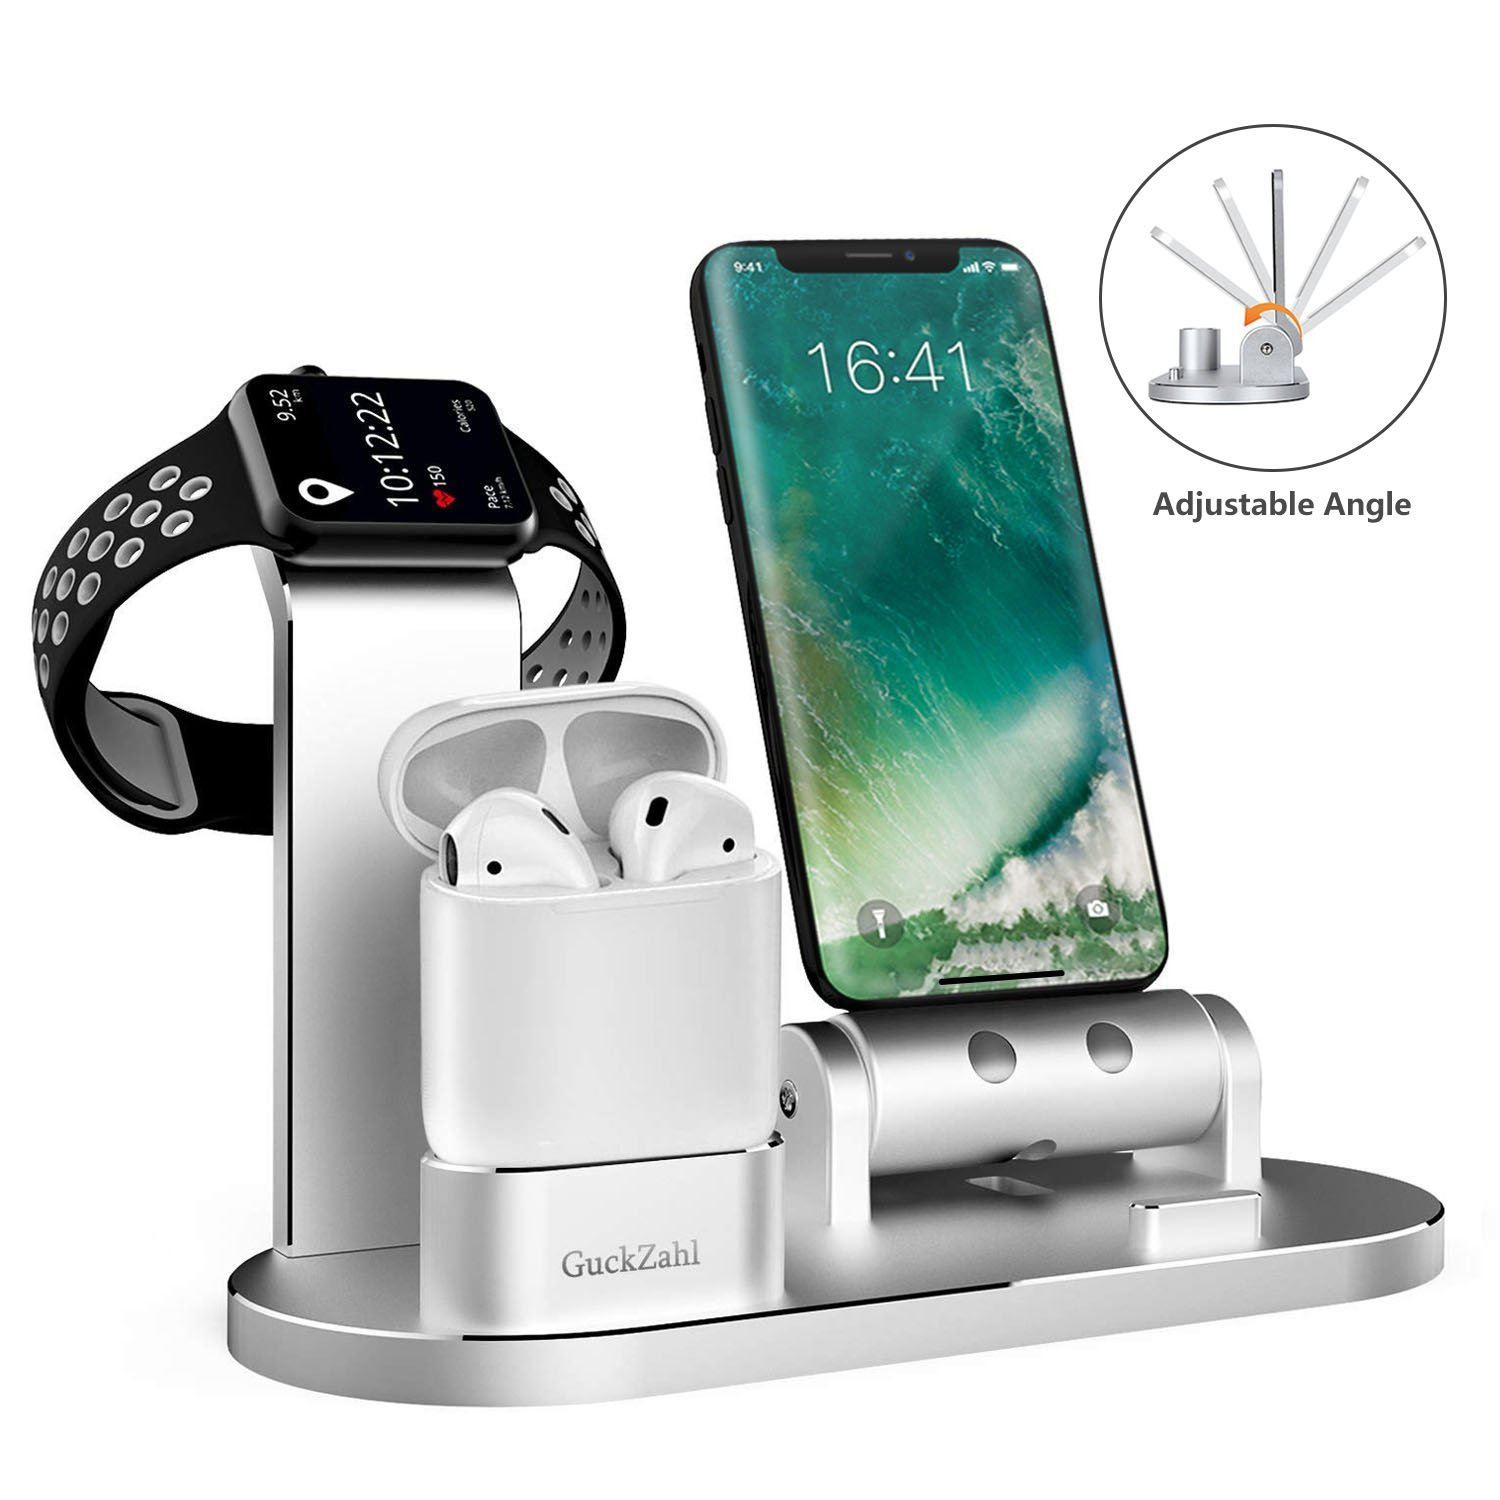 GuckZahl Apple Watch Changing Stand Aluminum 4 in 1 iWatch Charging Docks Phone Charging Station for Apple Watch Series 3/ 2/ 1/ AirPods/ iPhone X/ 8/ 8 Plus/ 7/ 7 Plus /6s/iPad Sunshine houseee